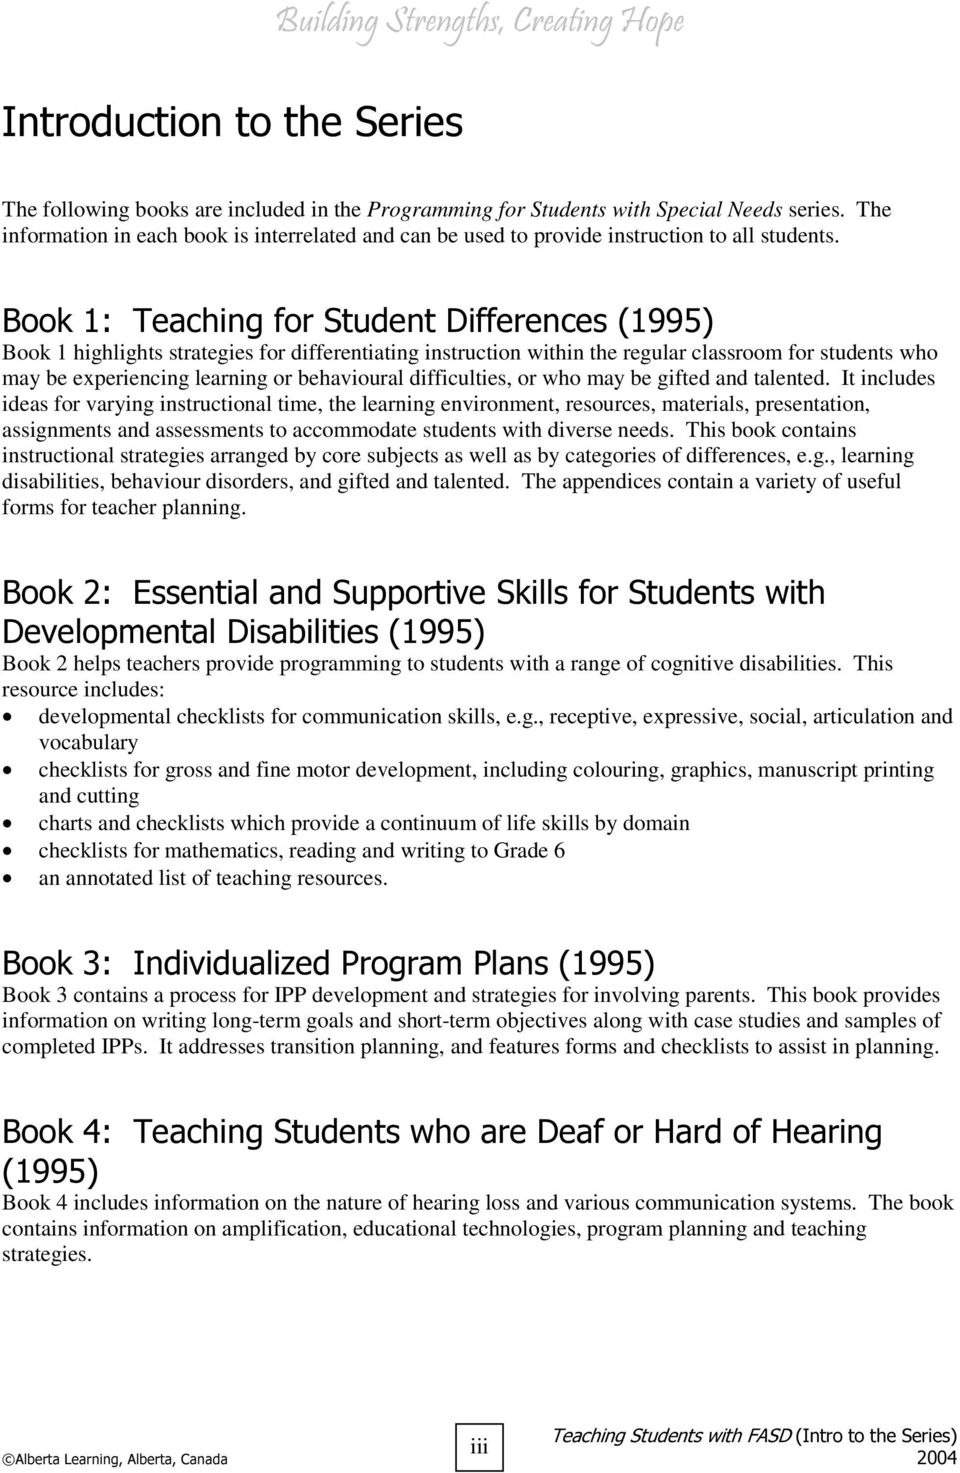 %RRN7HDFKLQJIRU6WXGHQW'LIIHUHQFHV Book 1 highlights strategies for differentiating instruction within the regular classroom for students who may be experiencing learning or behavioural difficulties,